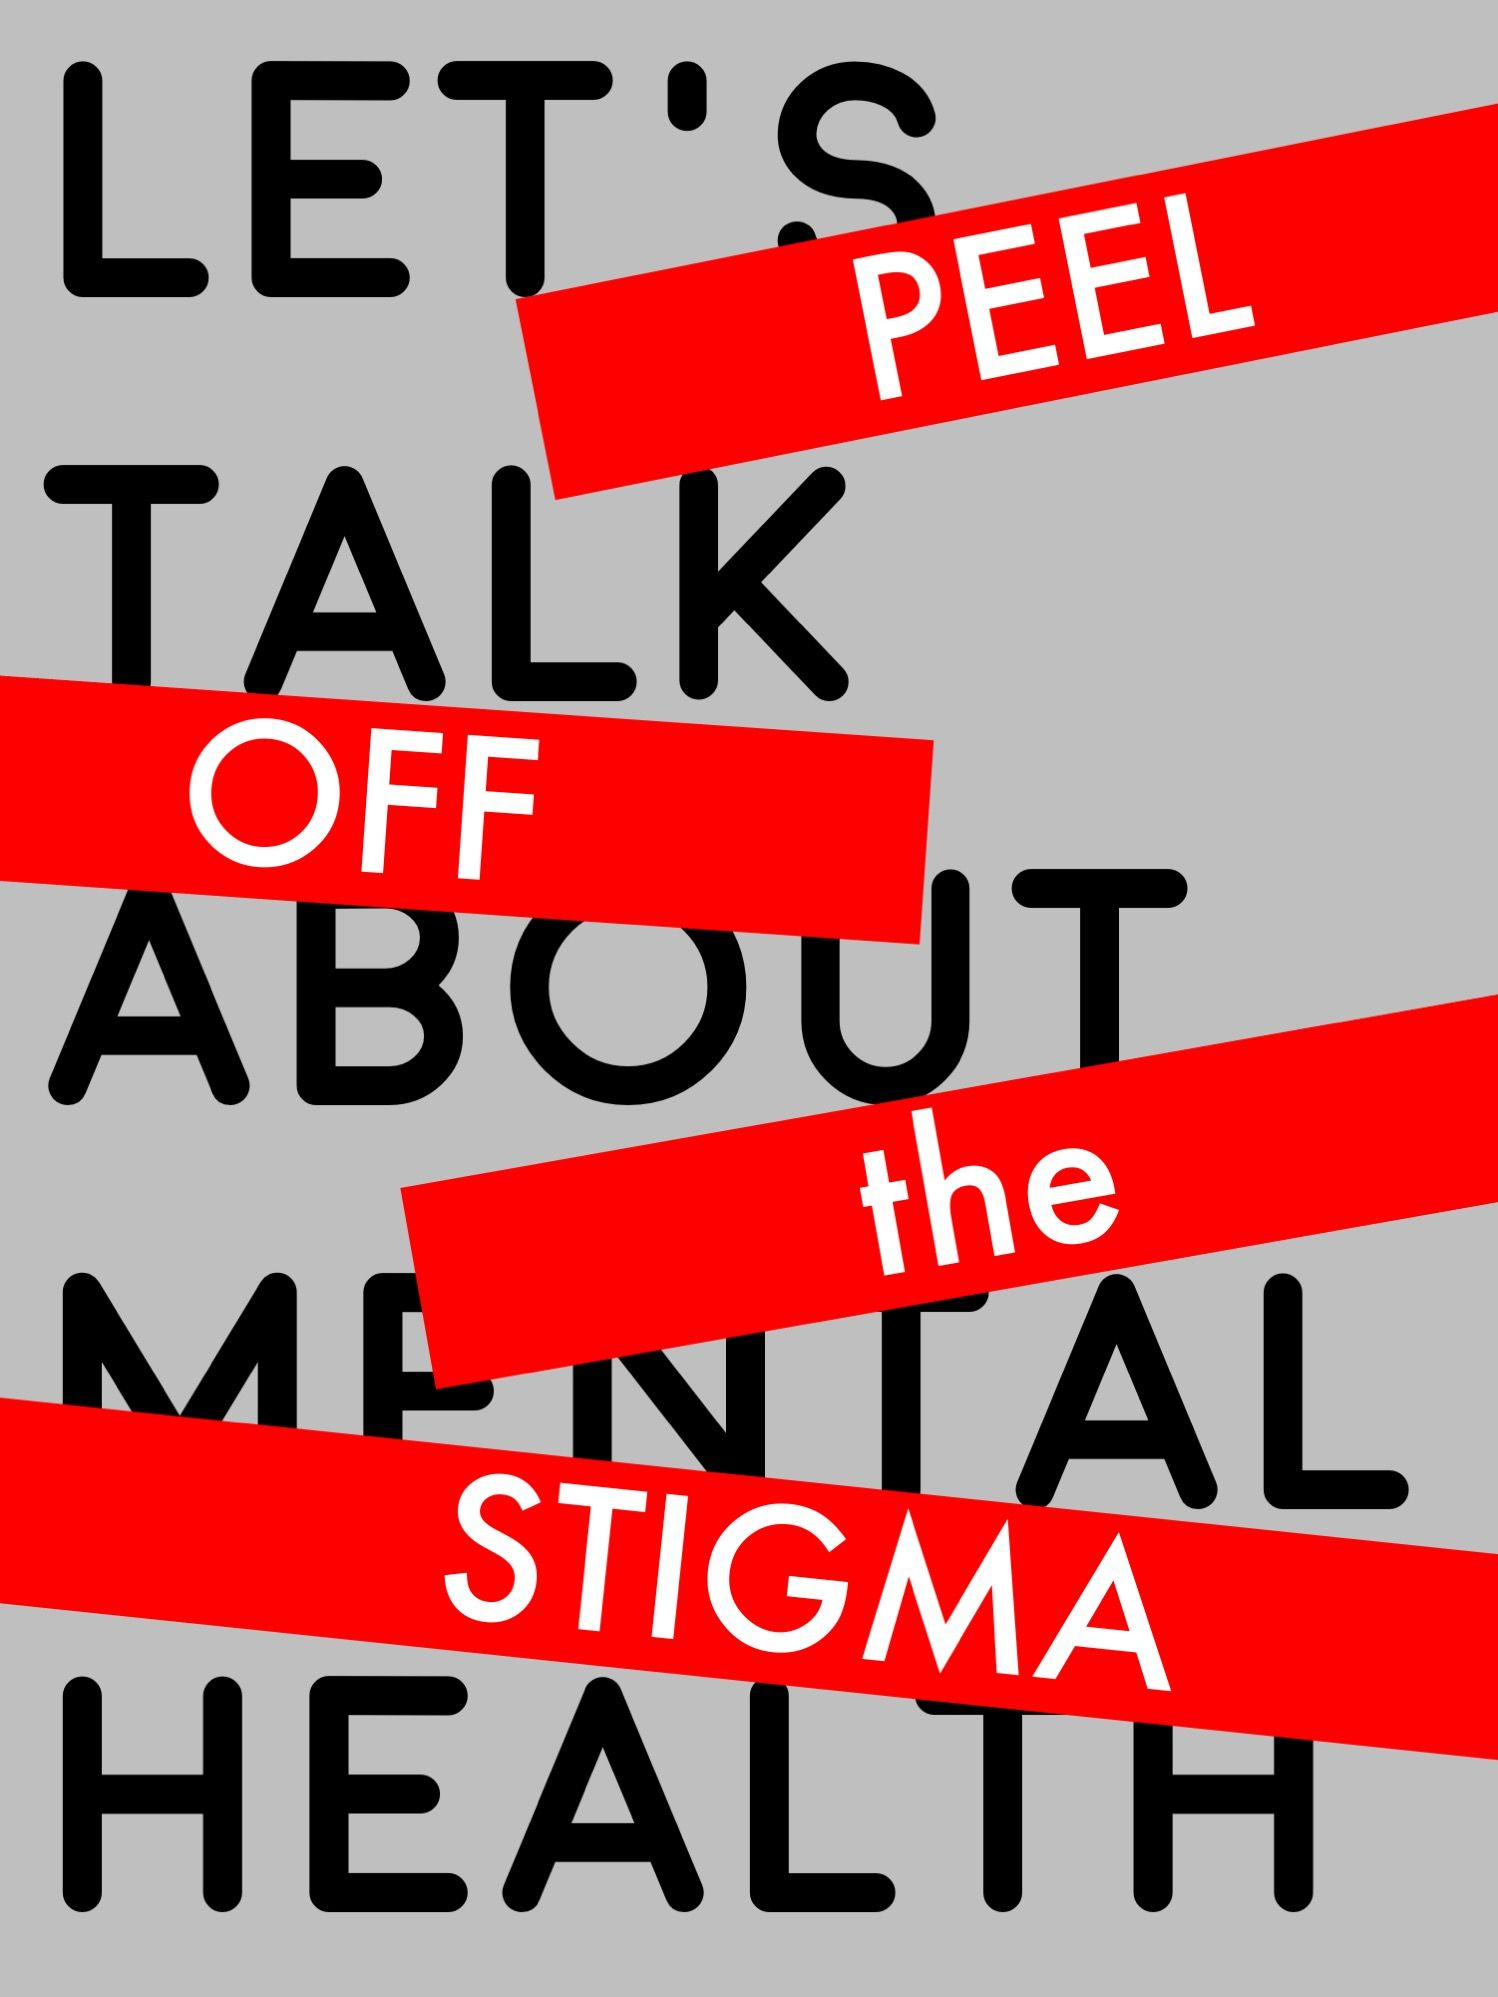 HOW MUCH DO YOU KNOW ABOUT MENTAL HEALTH?